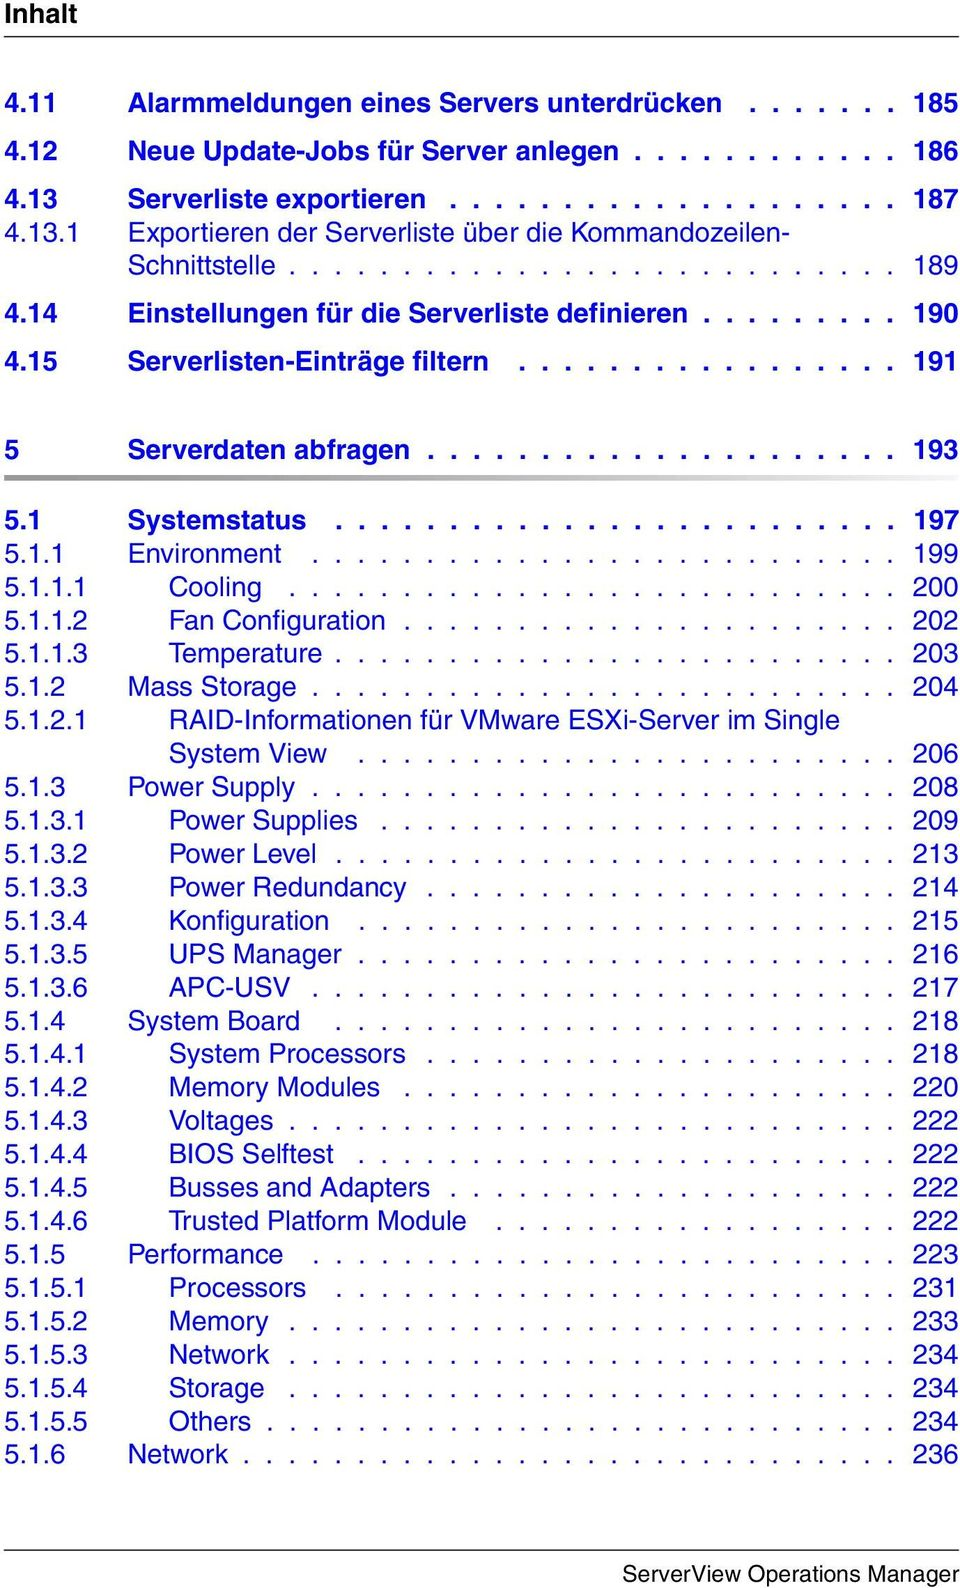 1 Systemstatus......................... 197 5.1.1 Environment.......................... 199 5.1.1.1 Cooling........................... 200 5.1.1.2 Fan Configuration...................... 202 5.1.1.3 Temperature.